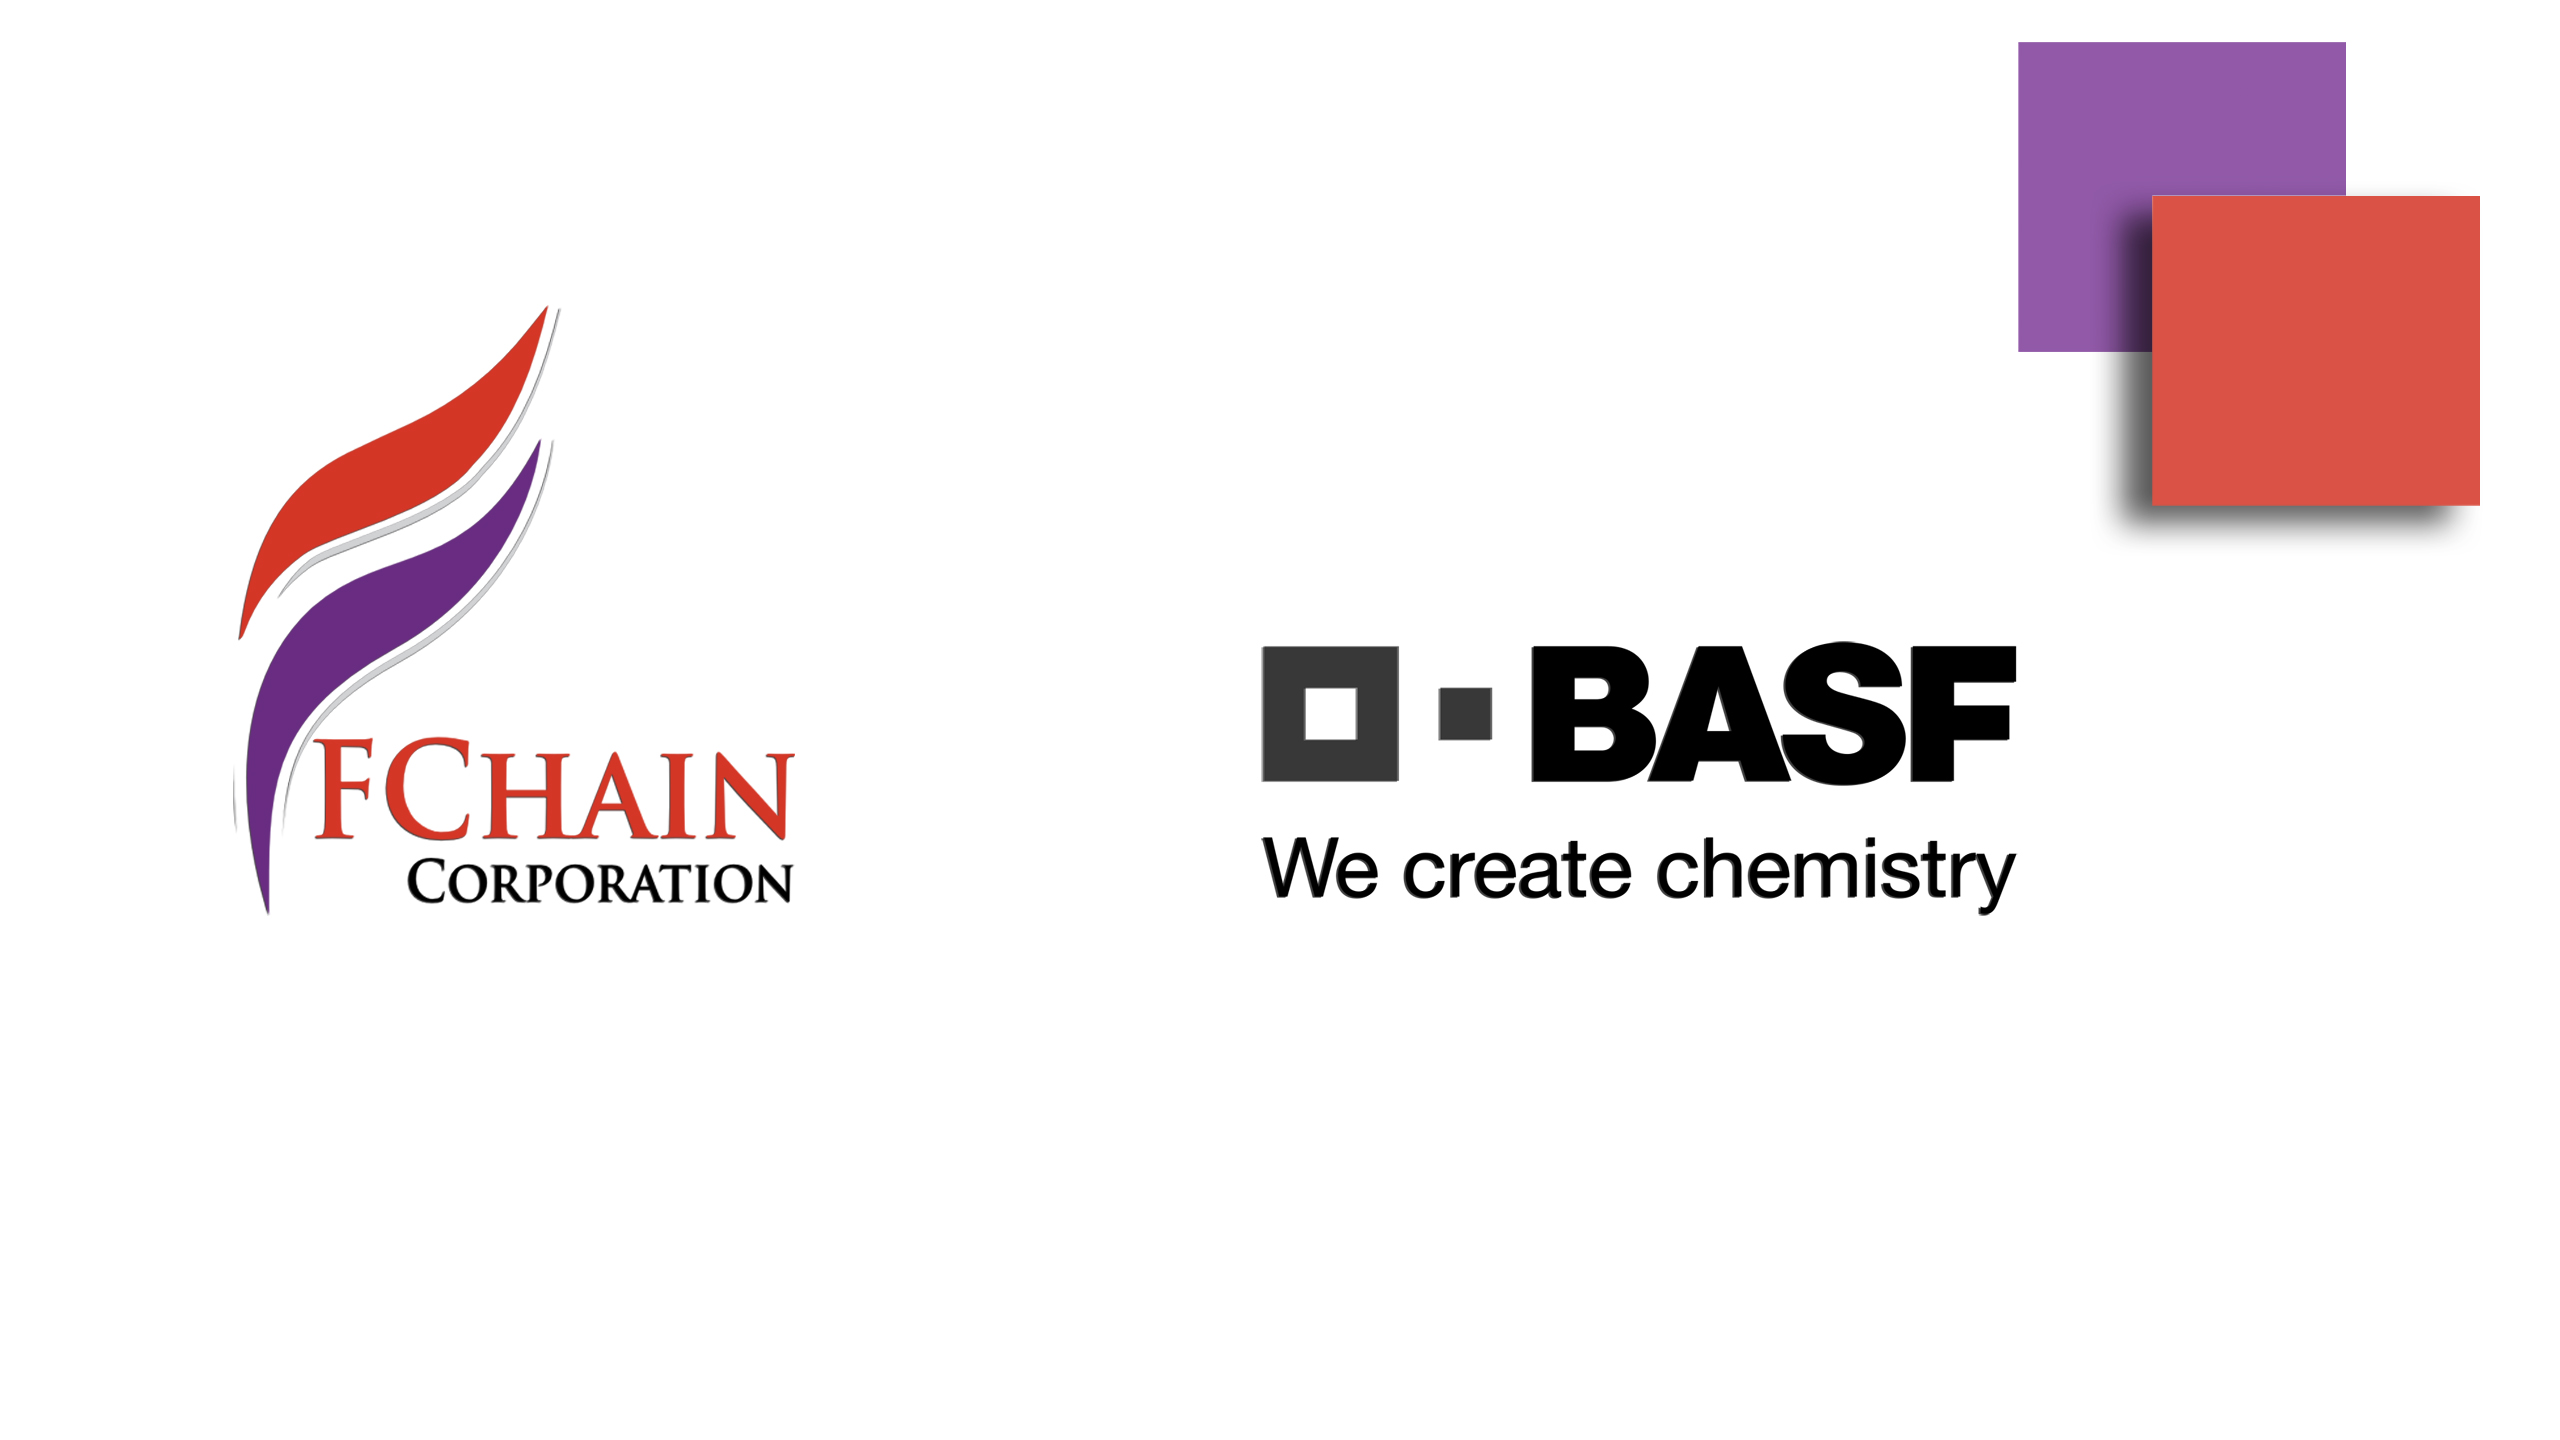 Efficient management – Collaboration with BASF CASPIAN